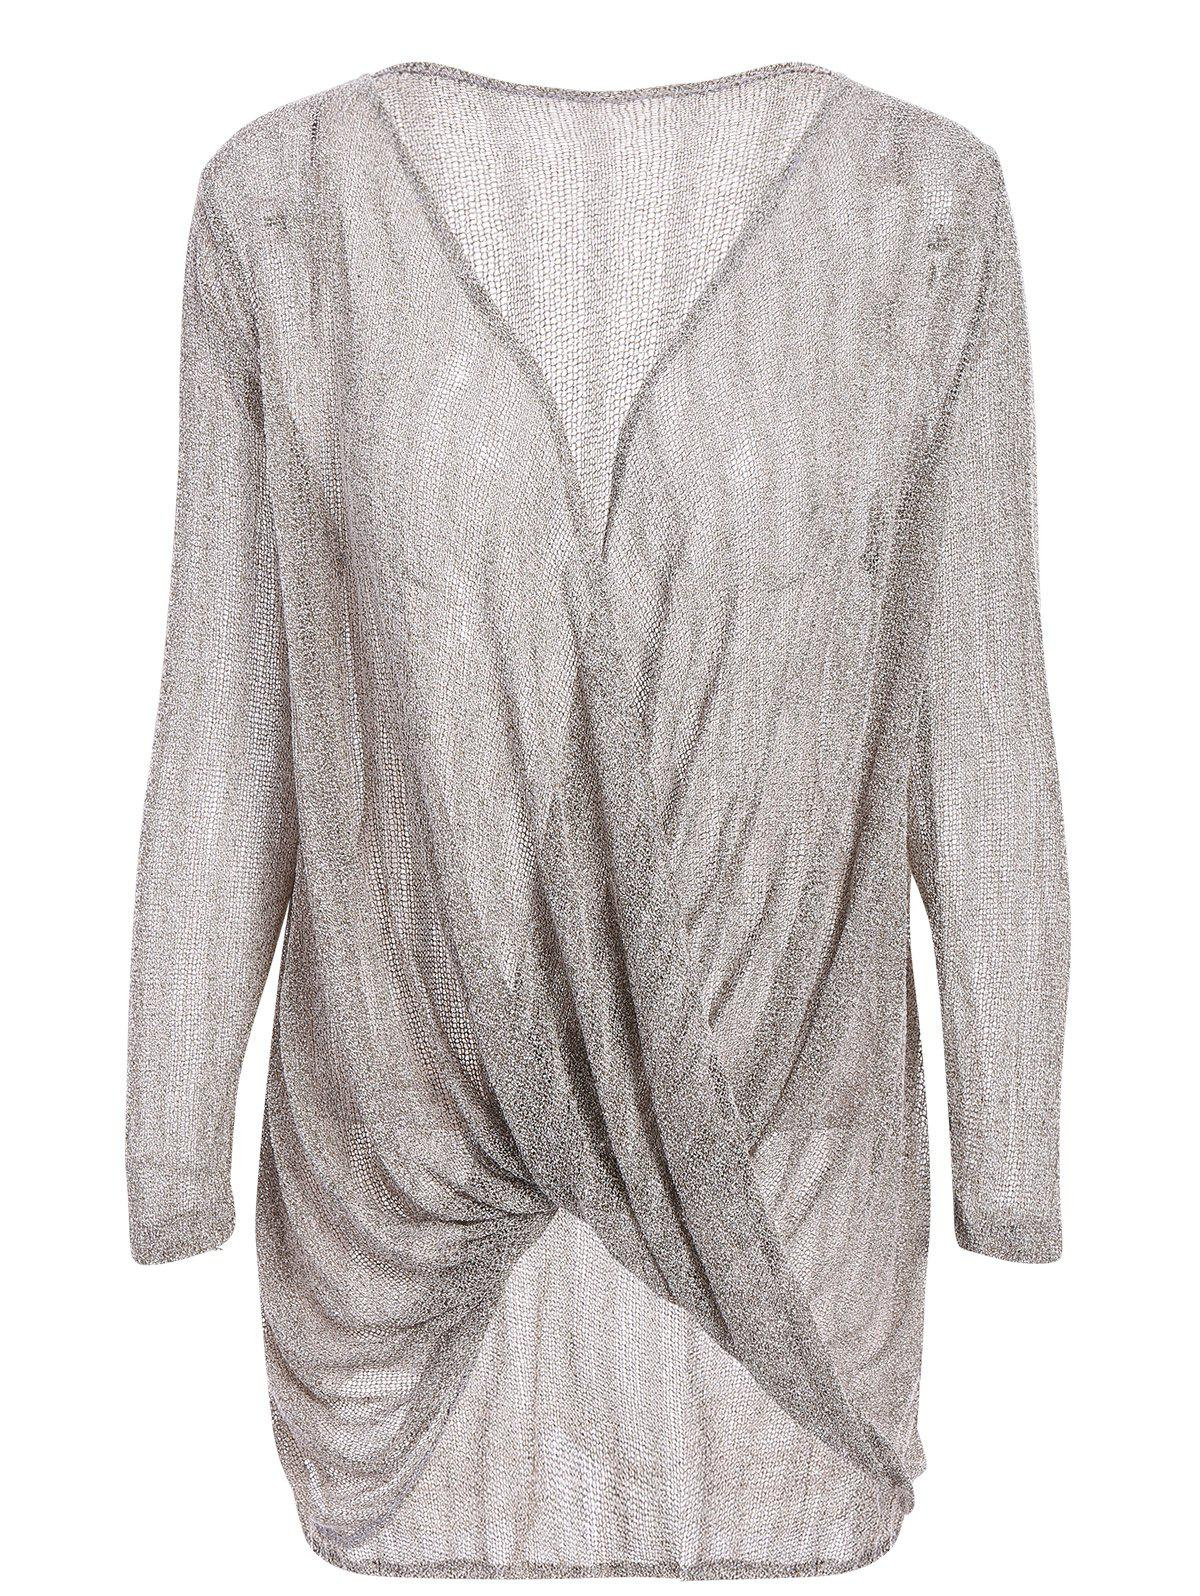 Stylish Loose-Fitting Long Sleeve Solid Color Knitwear For Women